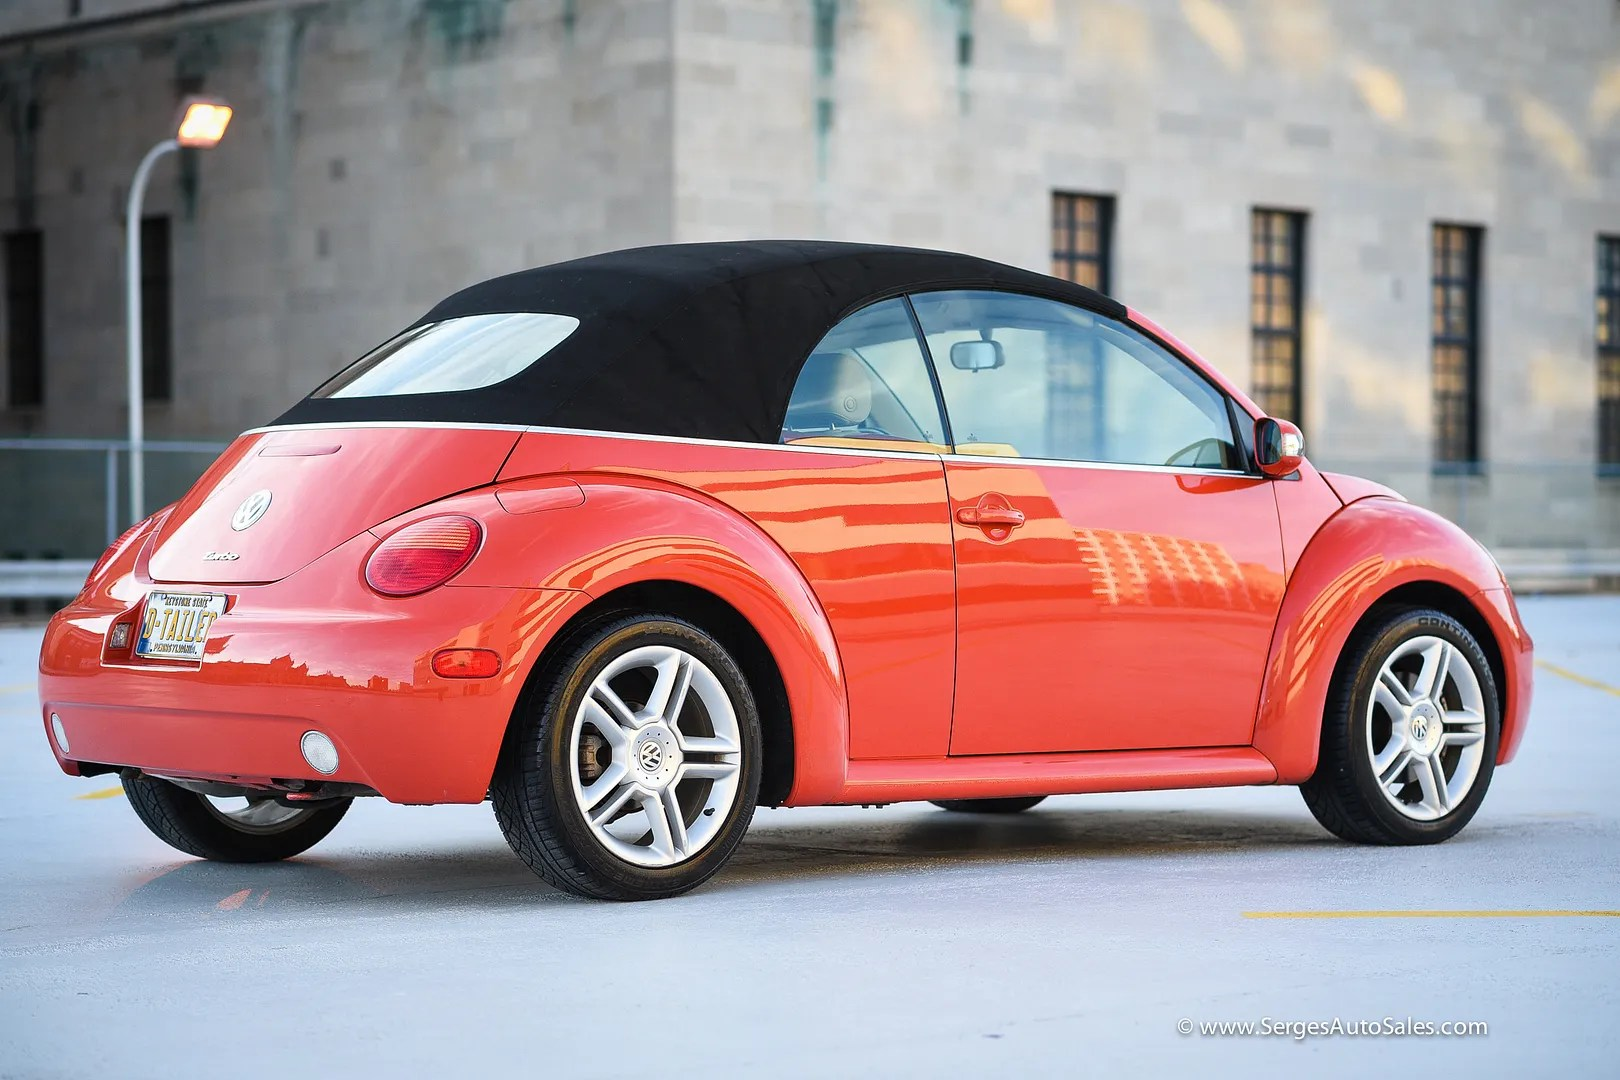 photo beetle-14_zps7yum676d.jpg